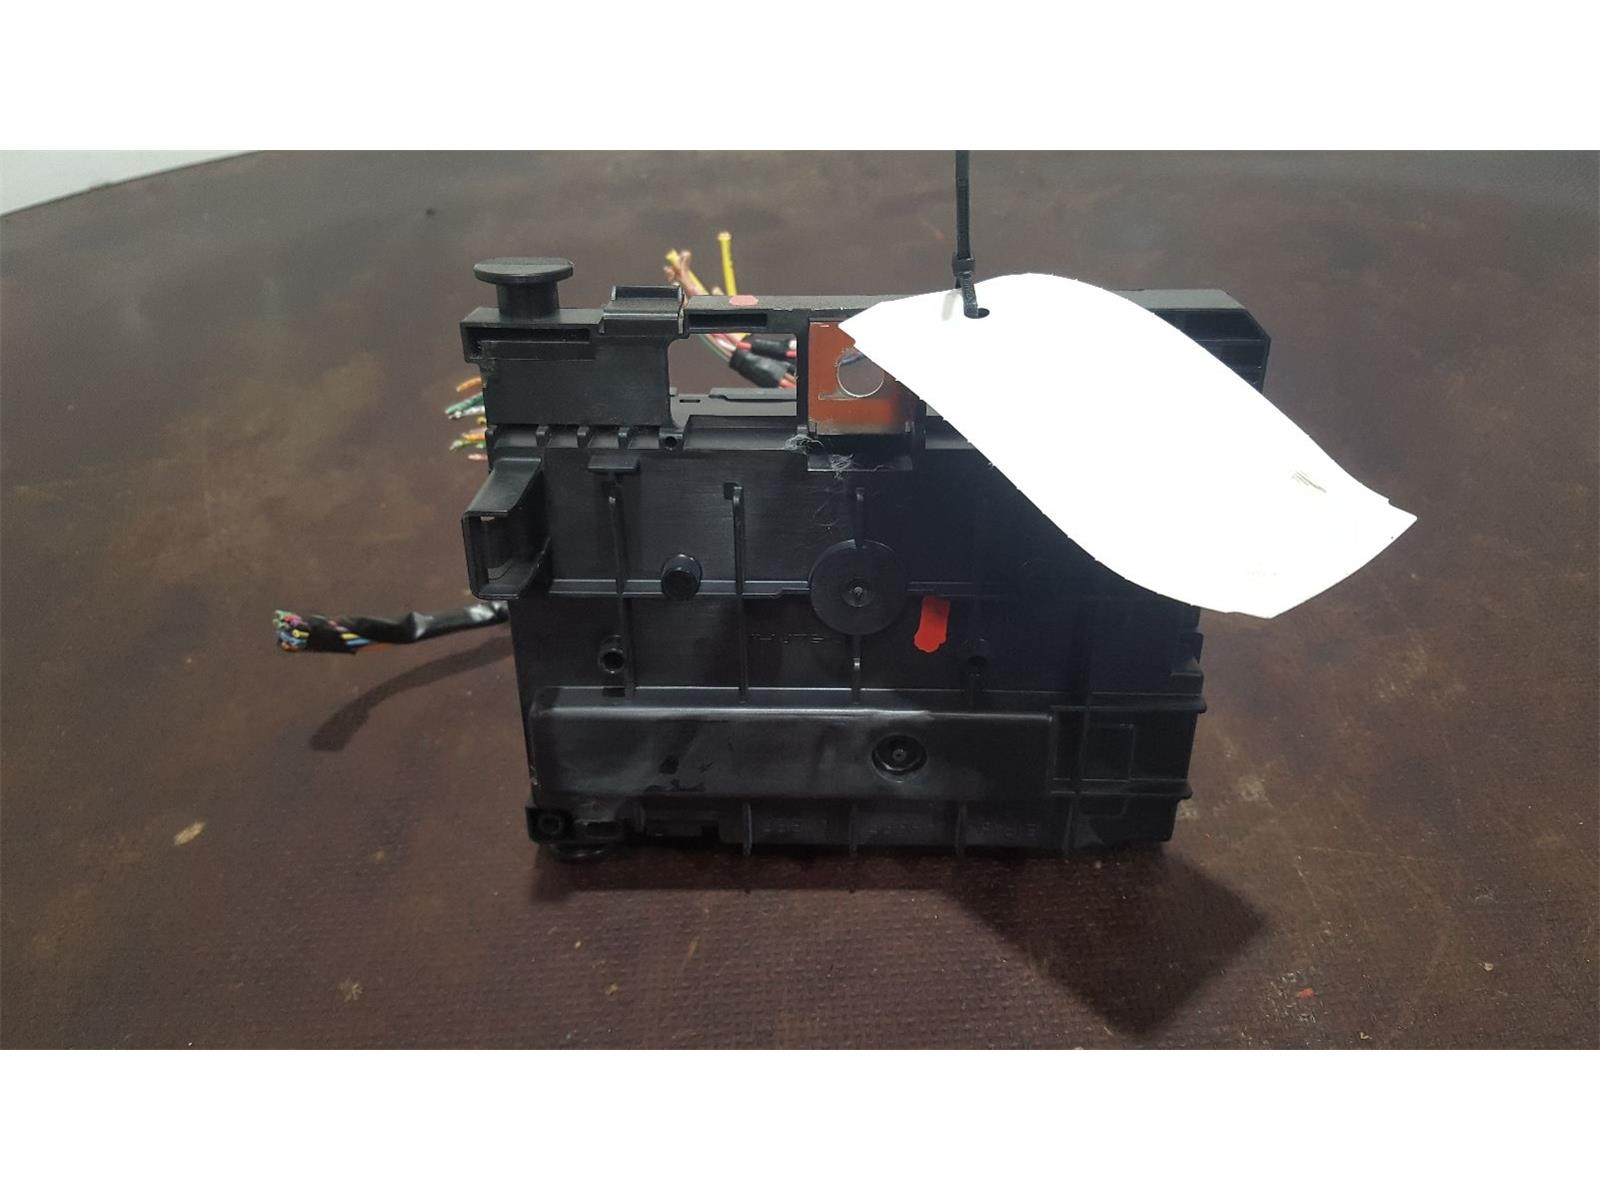 Peugeot 308 2008 To 2010 Sport Hdi Fuse Box Used And Spare Parts At Cover Combellack Vehicle Recyclers